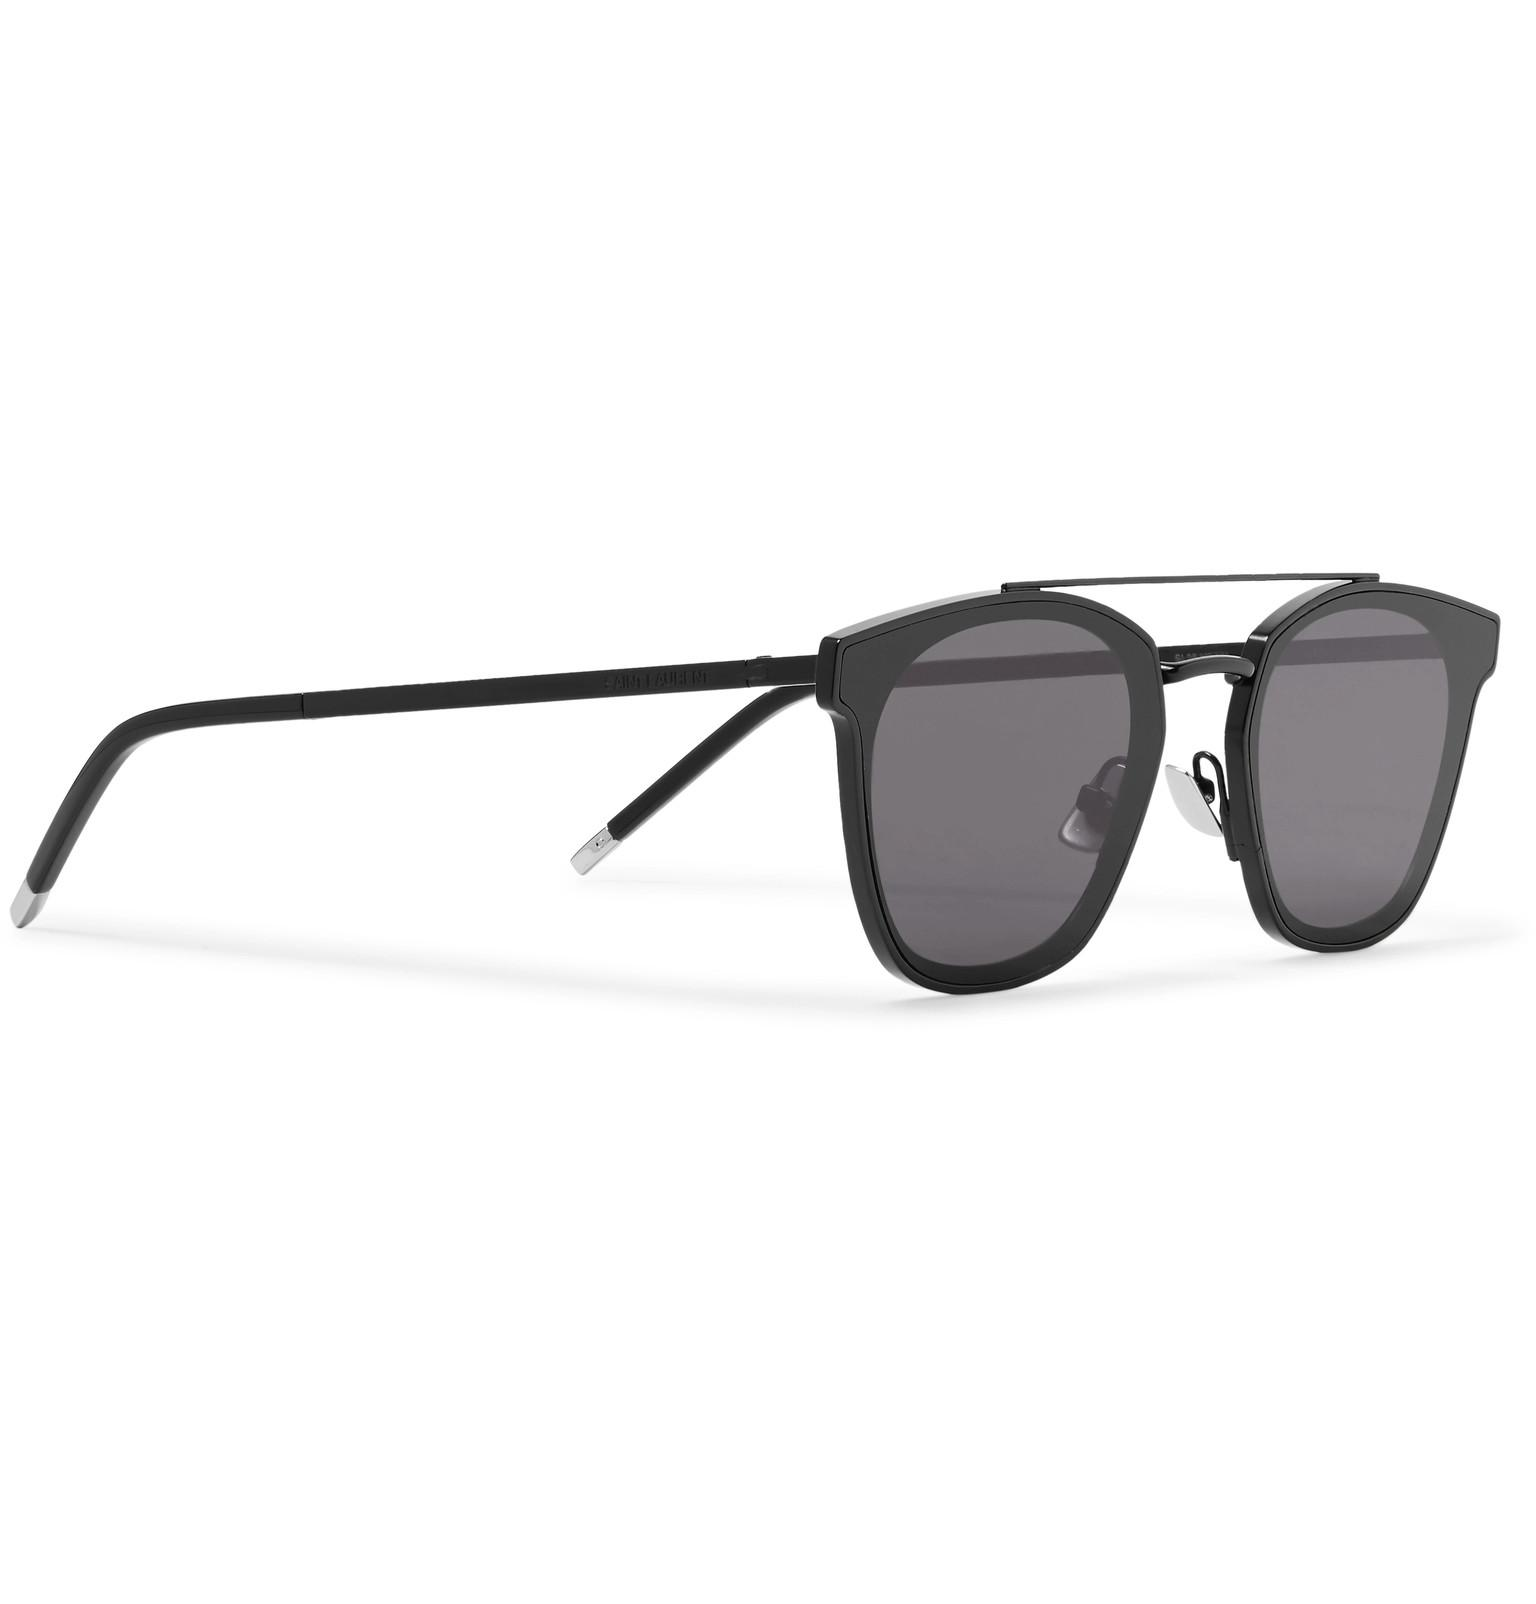 680776b665 Saint Laurent - Black Aviator-style Metal Sunglasses for Men - Lyst. View  fullscreen